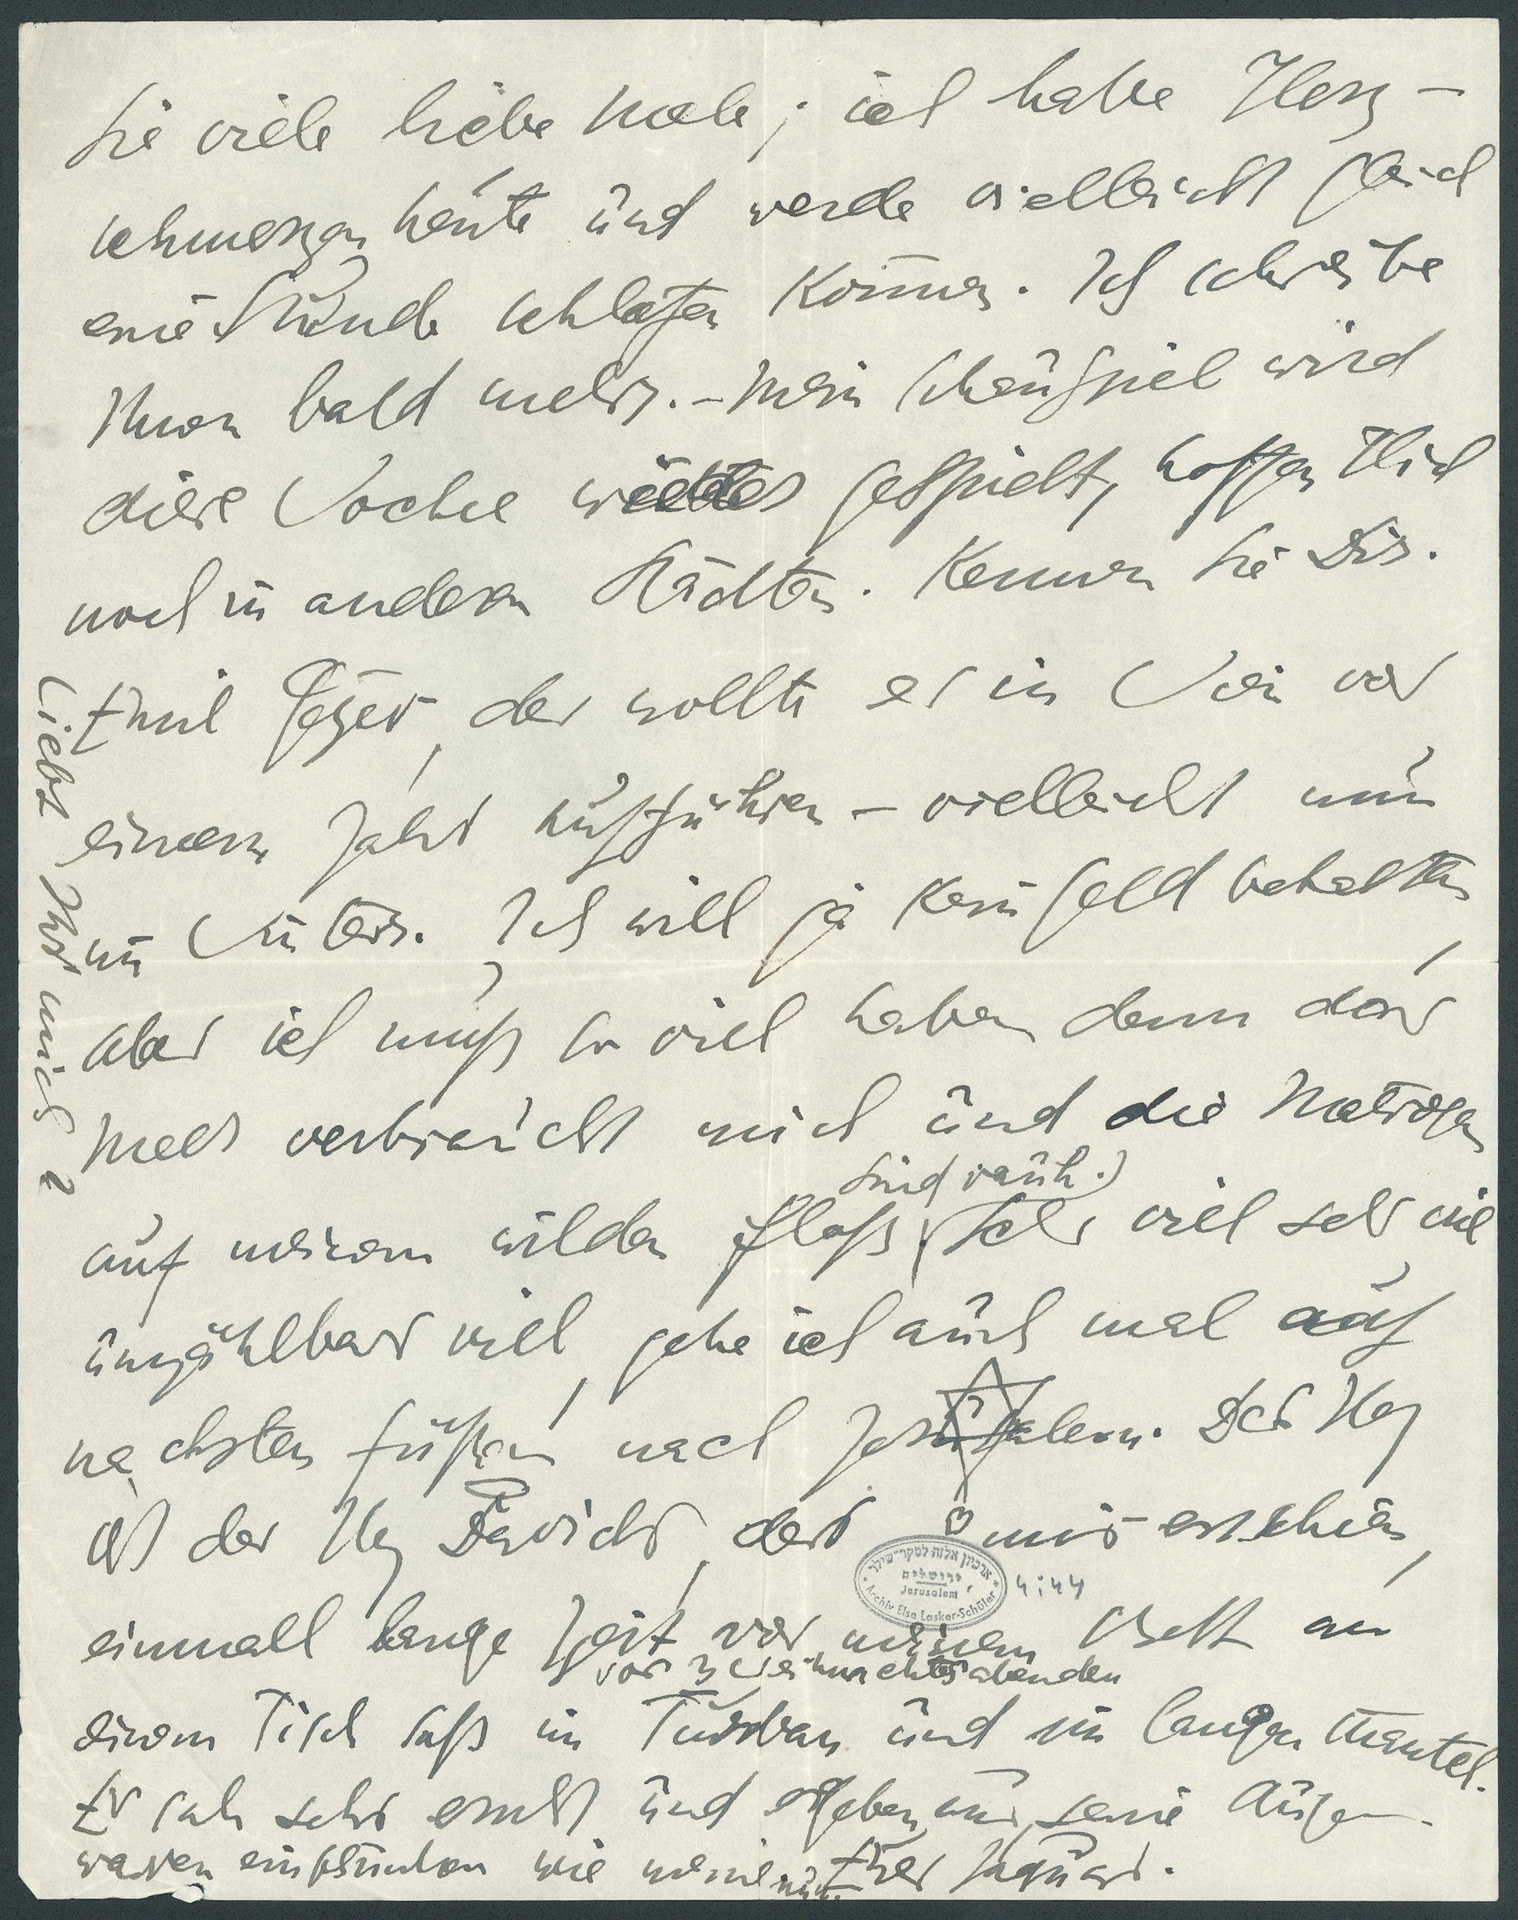 Letter to Paul Goldscheider (p. 3)